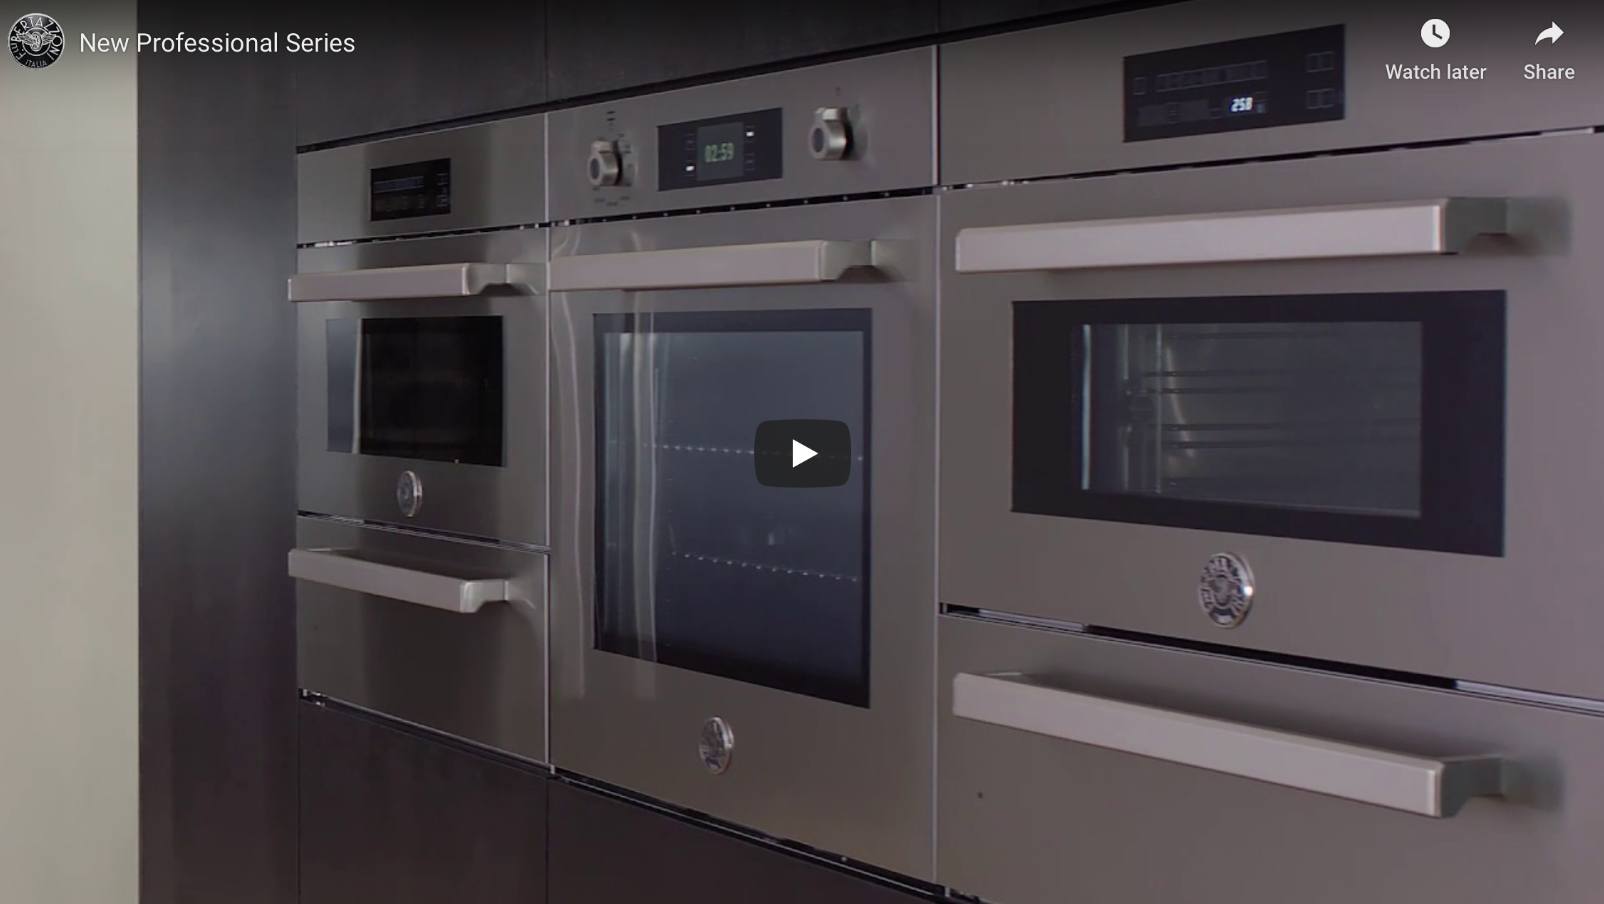 A new line of built-in appliances